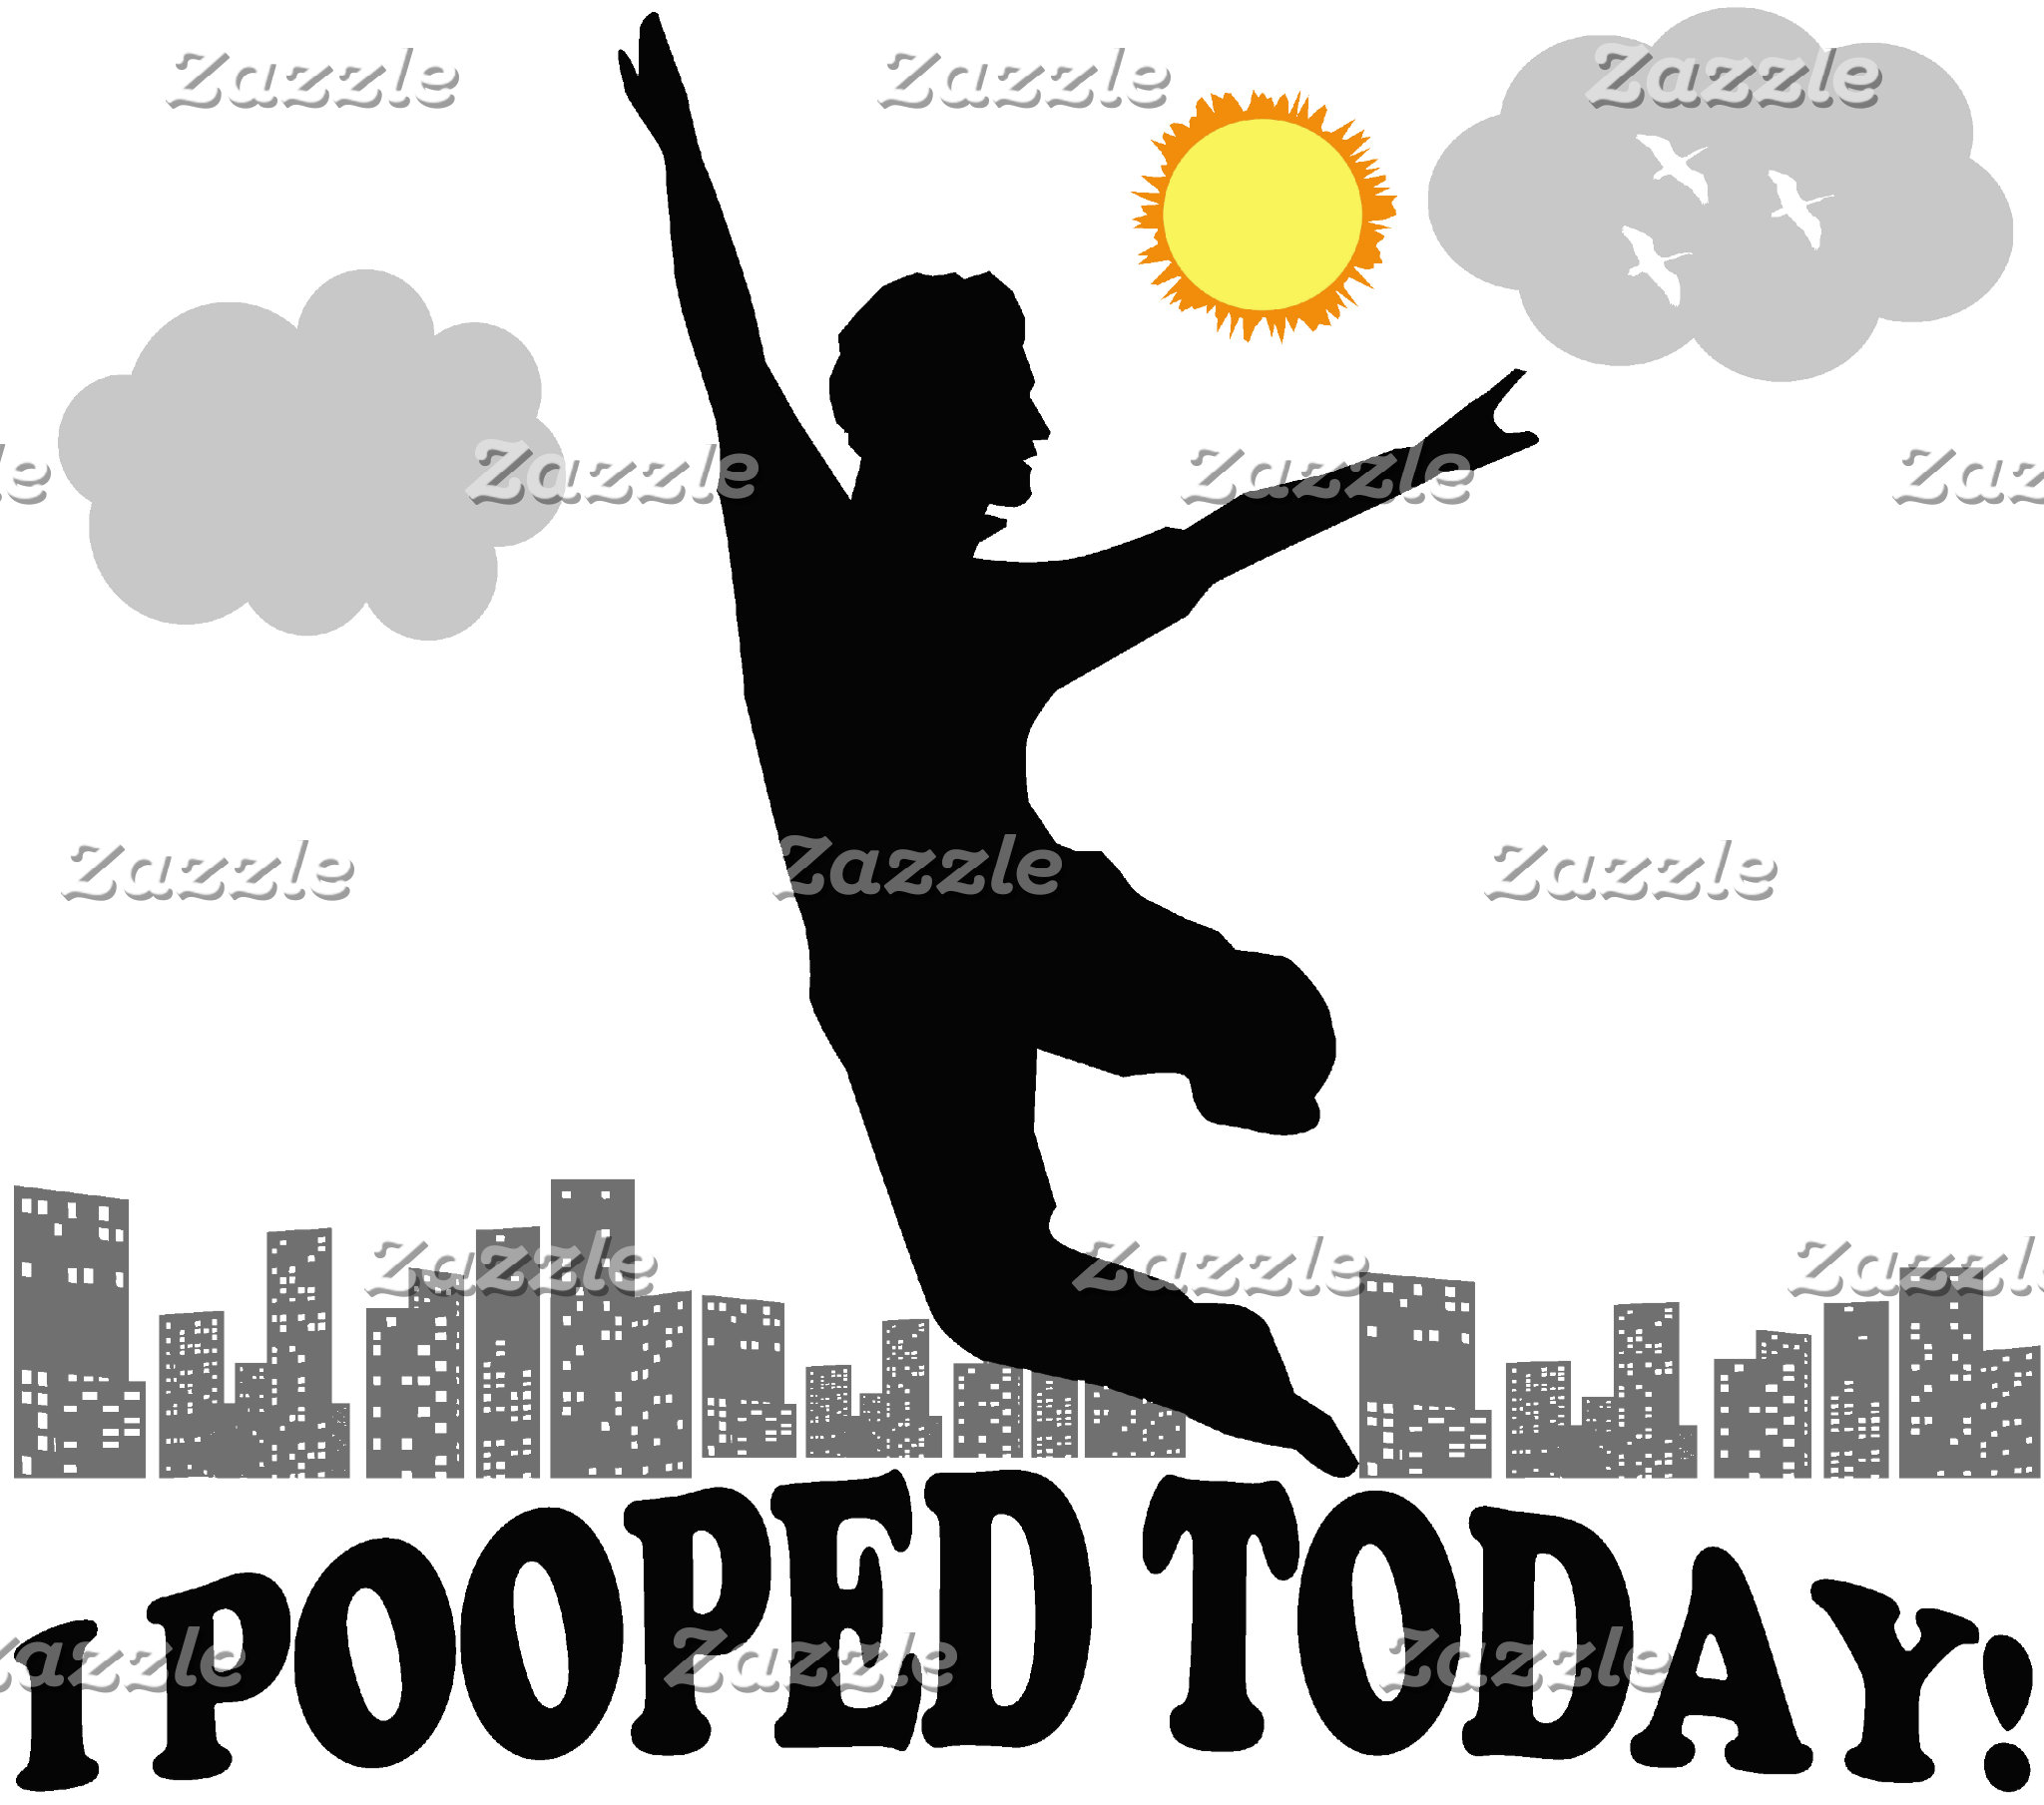 I Pooped Today!